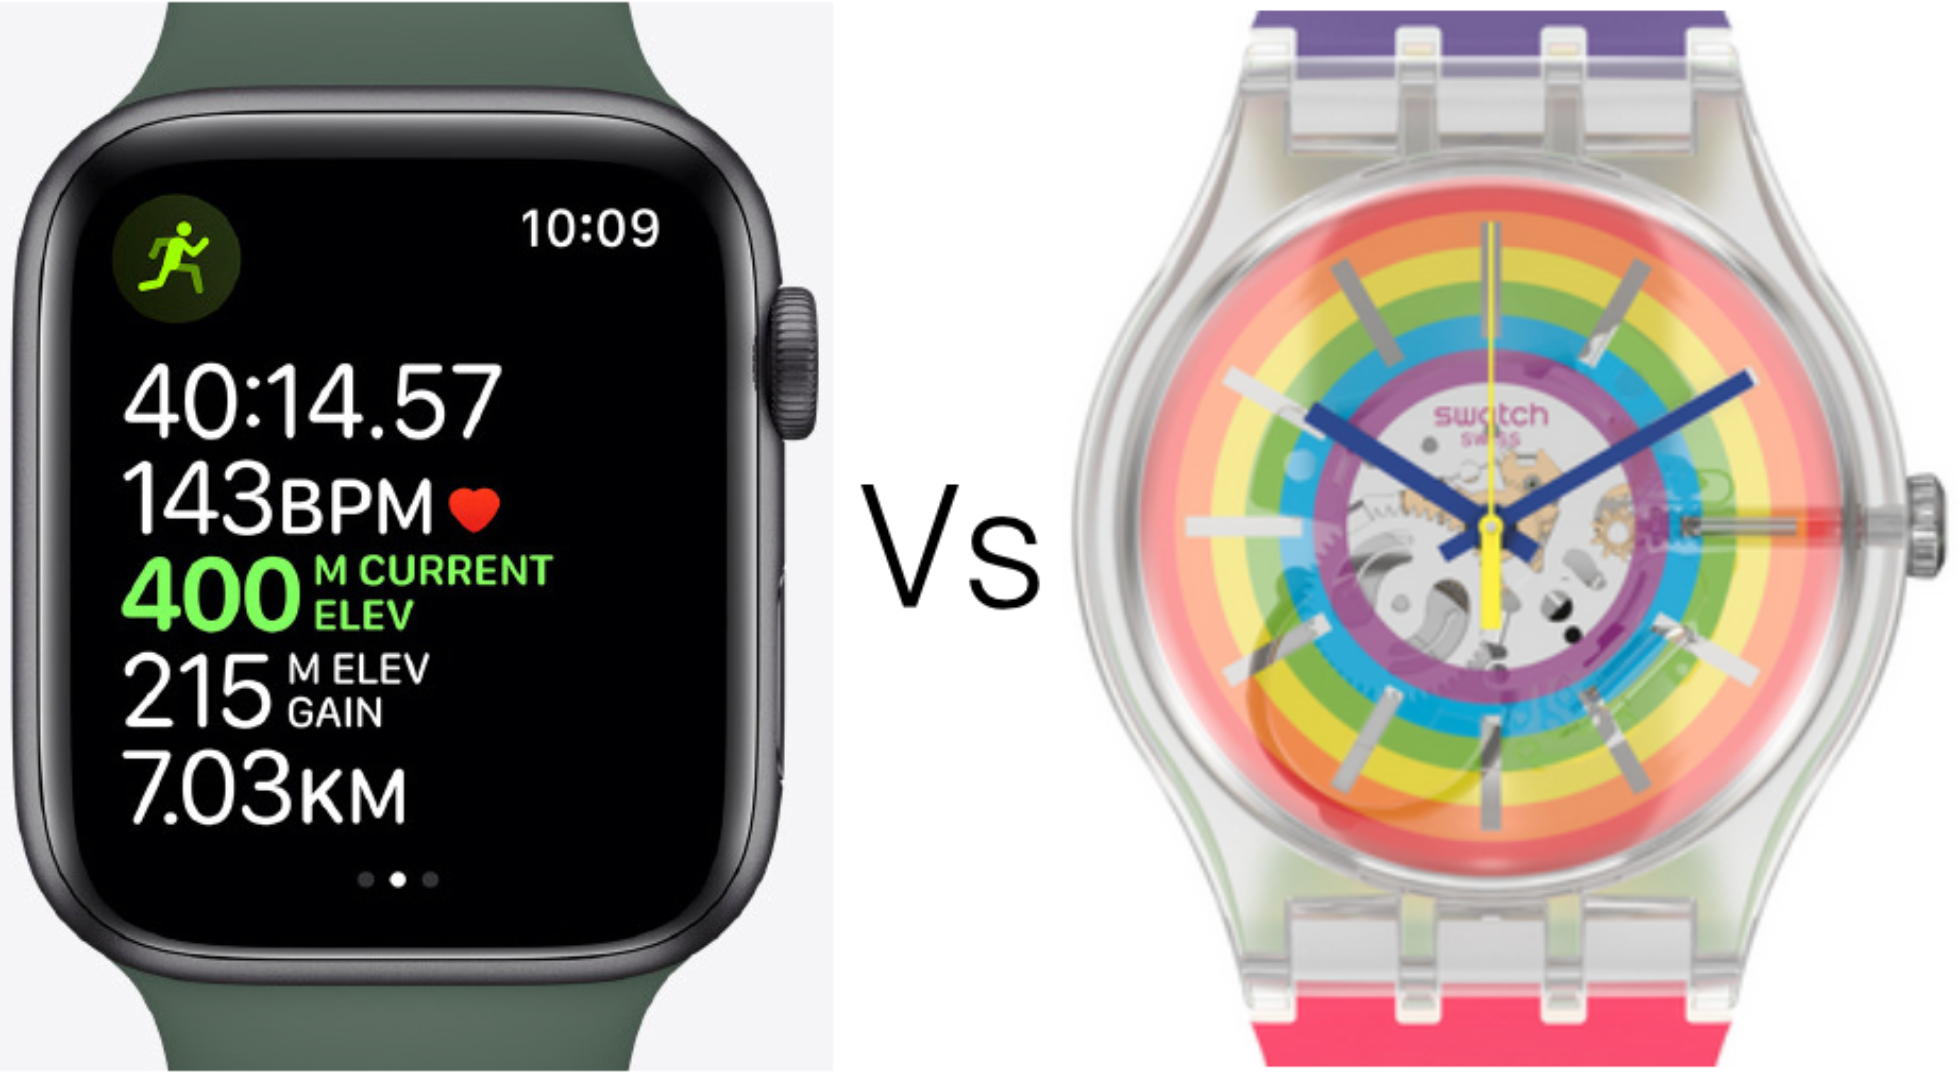 Fight, fight, fight: Why Apple and Swatch hate each other